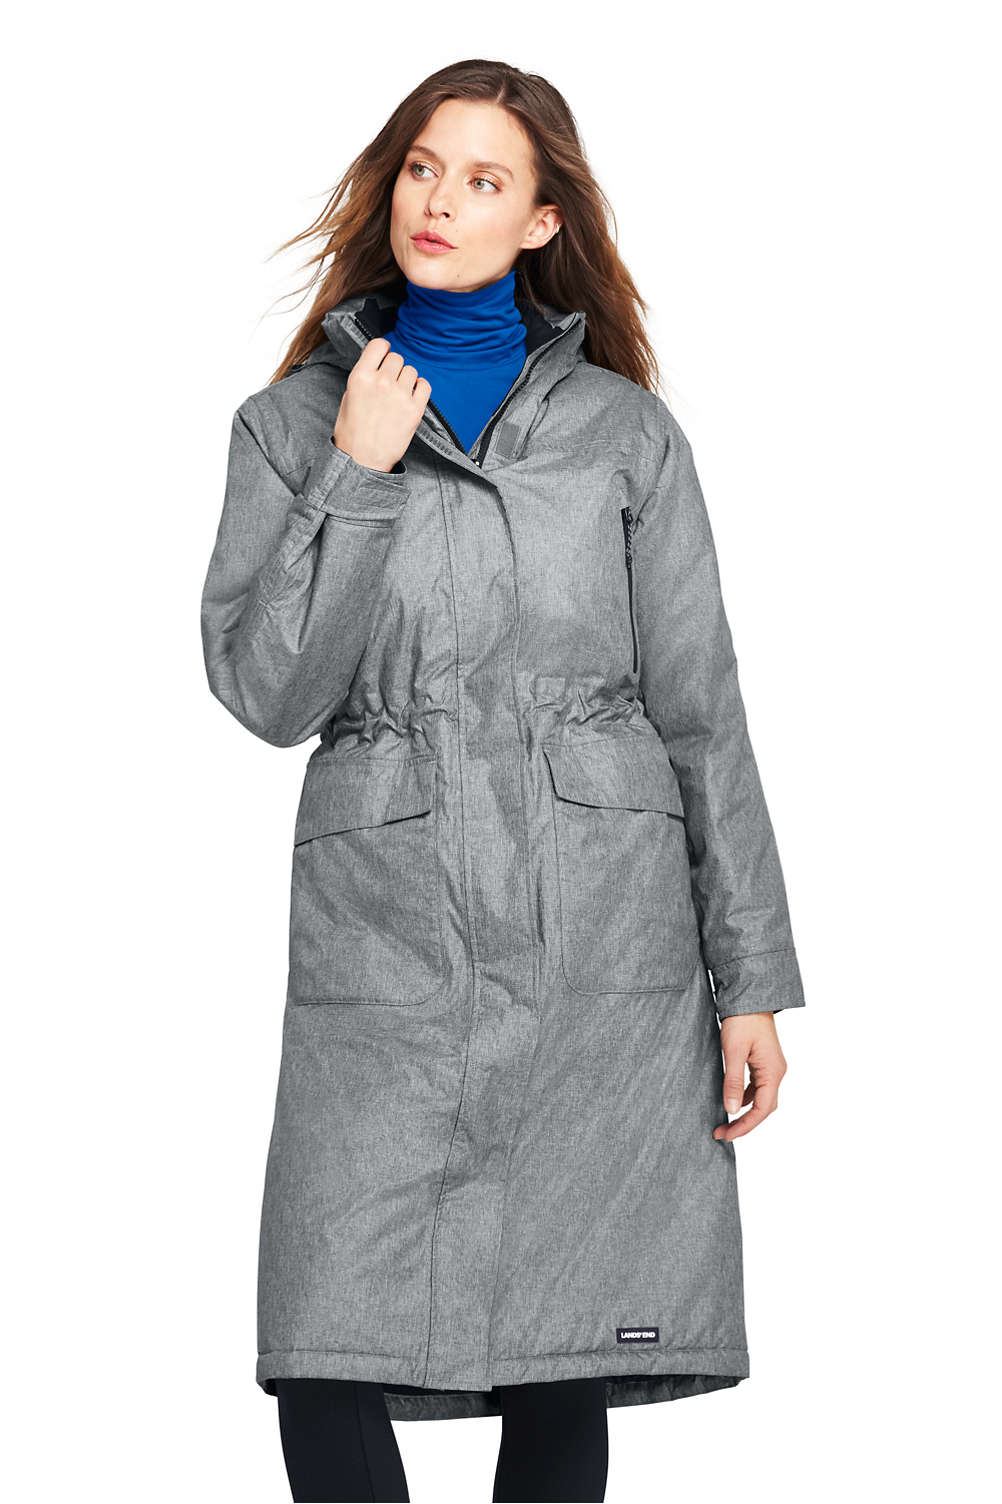 3a3bf2dca7 Women's Squall Insulated Long Stadium Coat from Lands' End